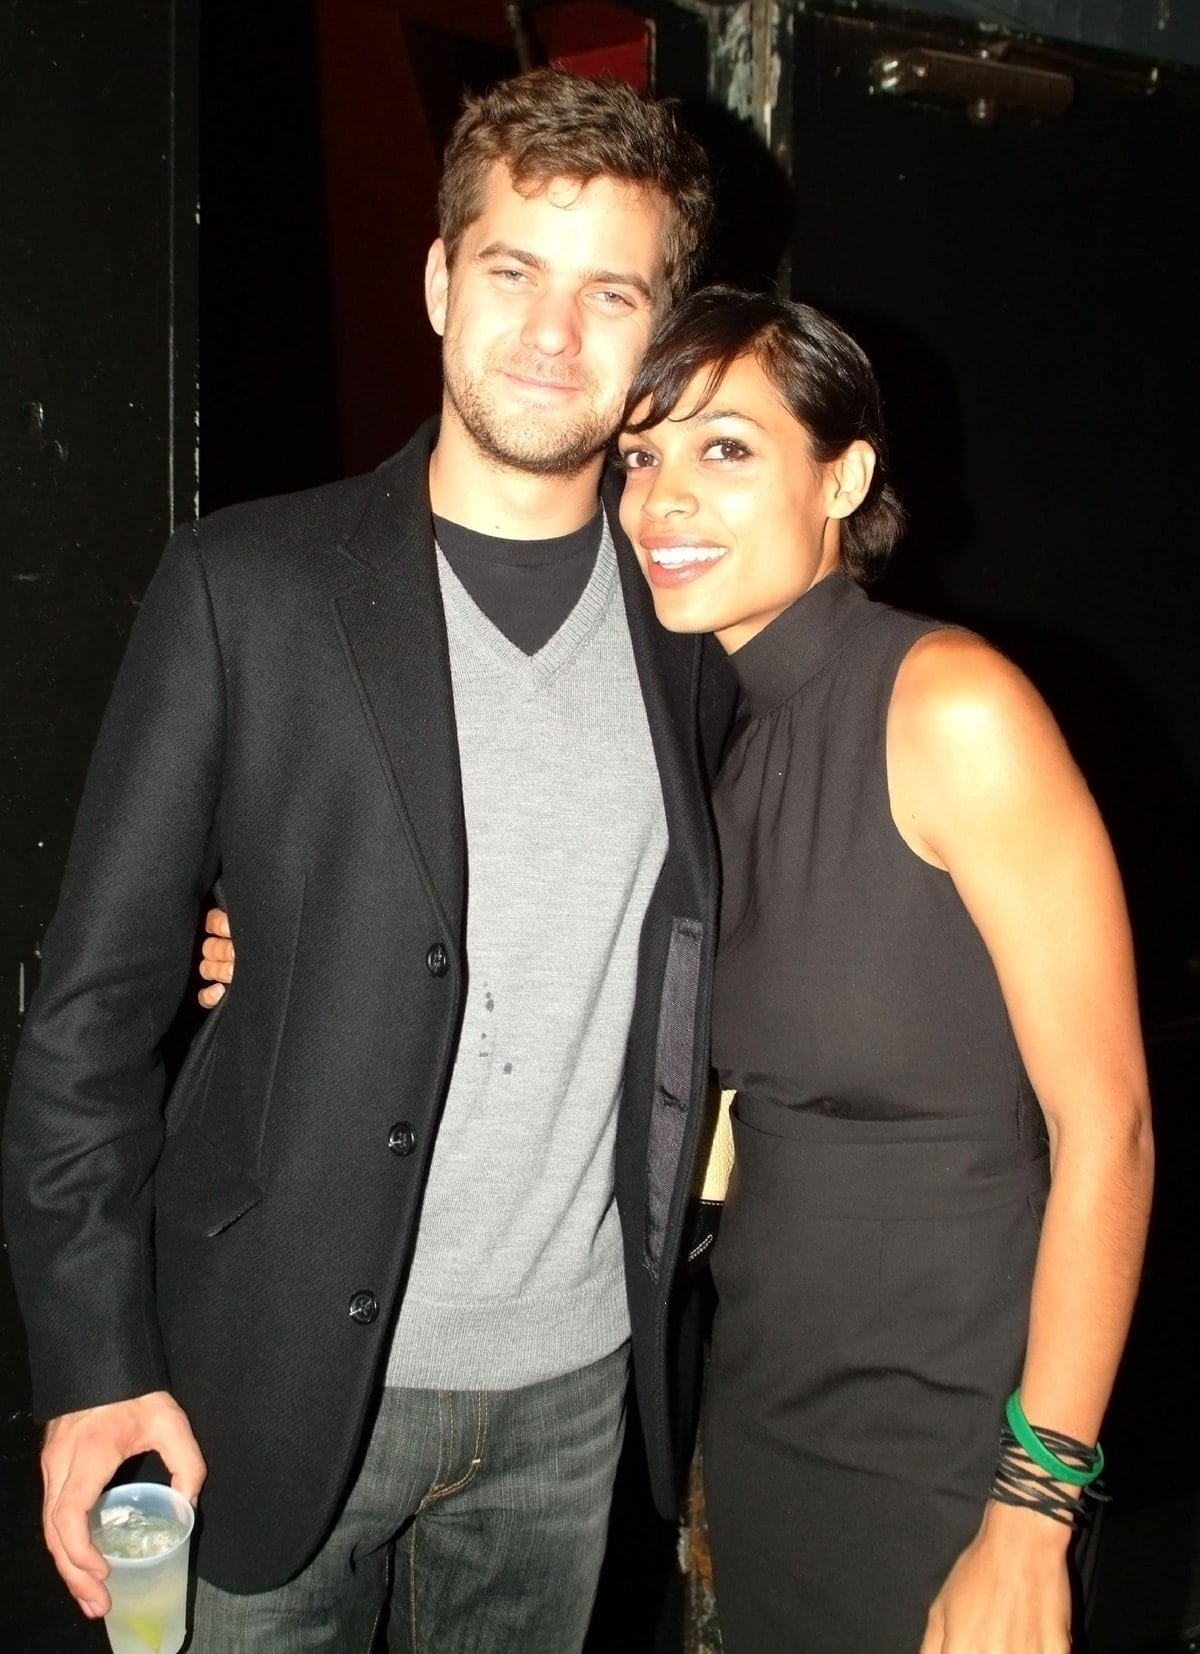 Rosario Dawson dated Joshua Jackson for about a year